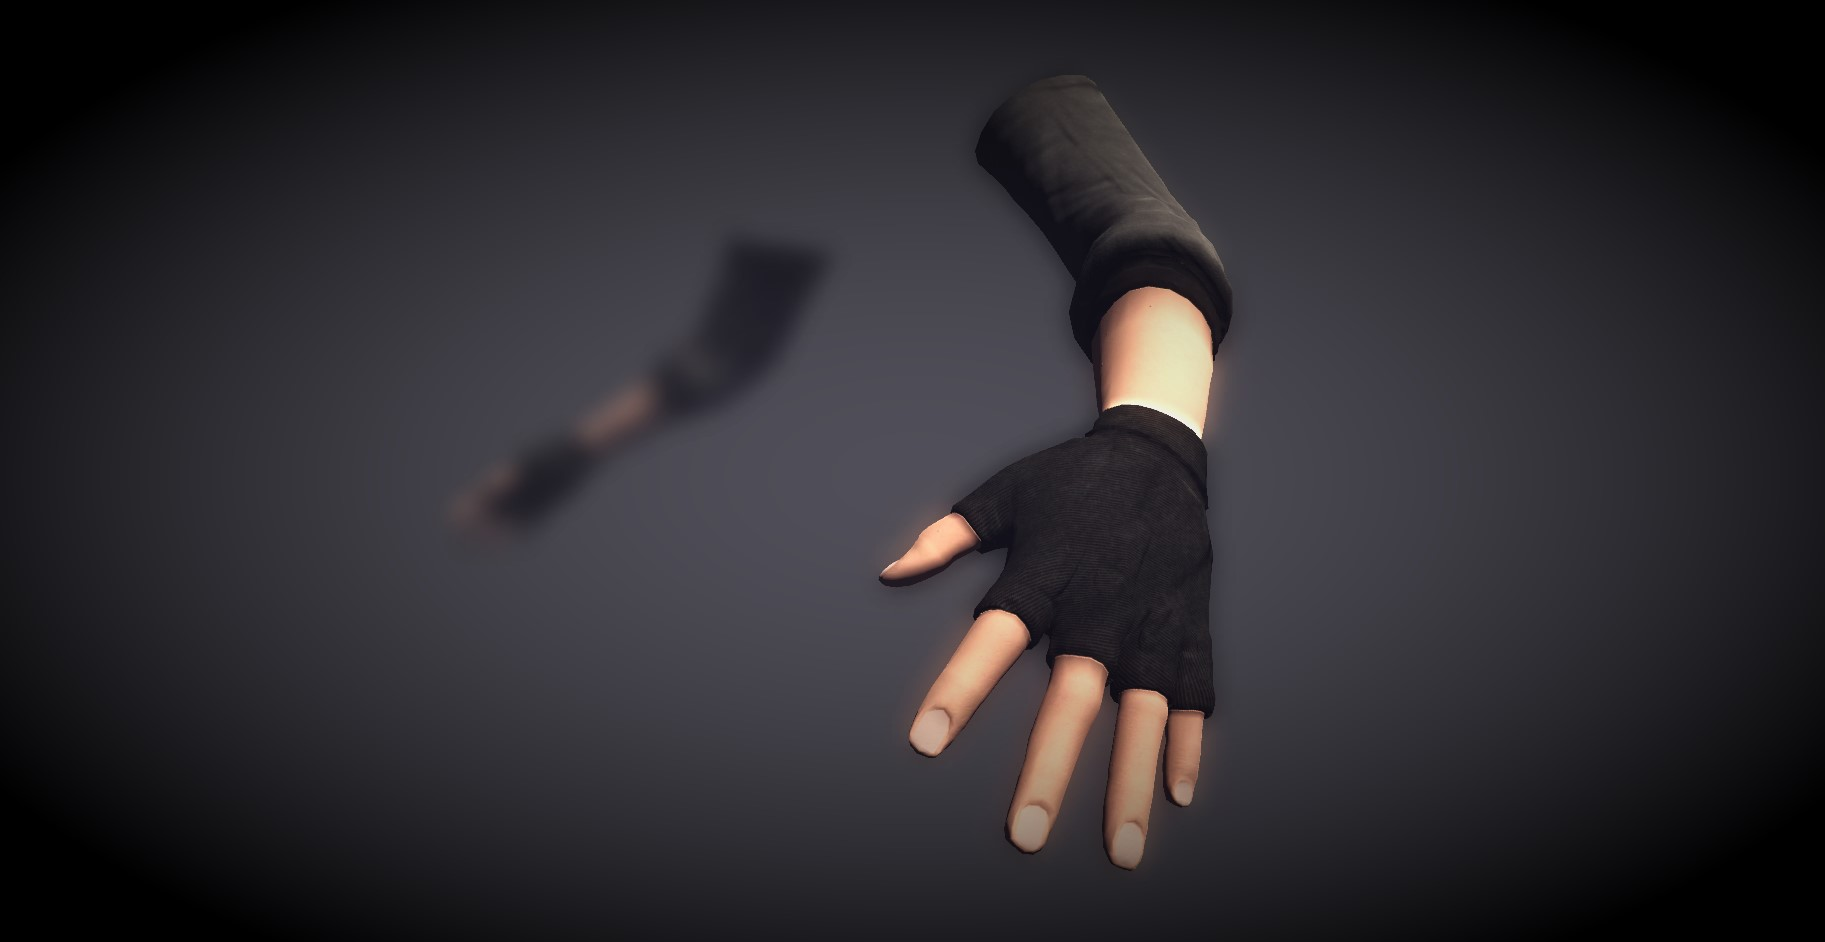 FPS Thug Hands